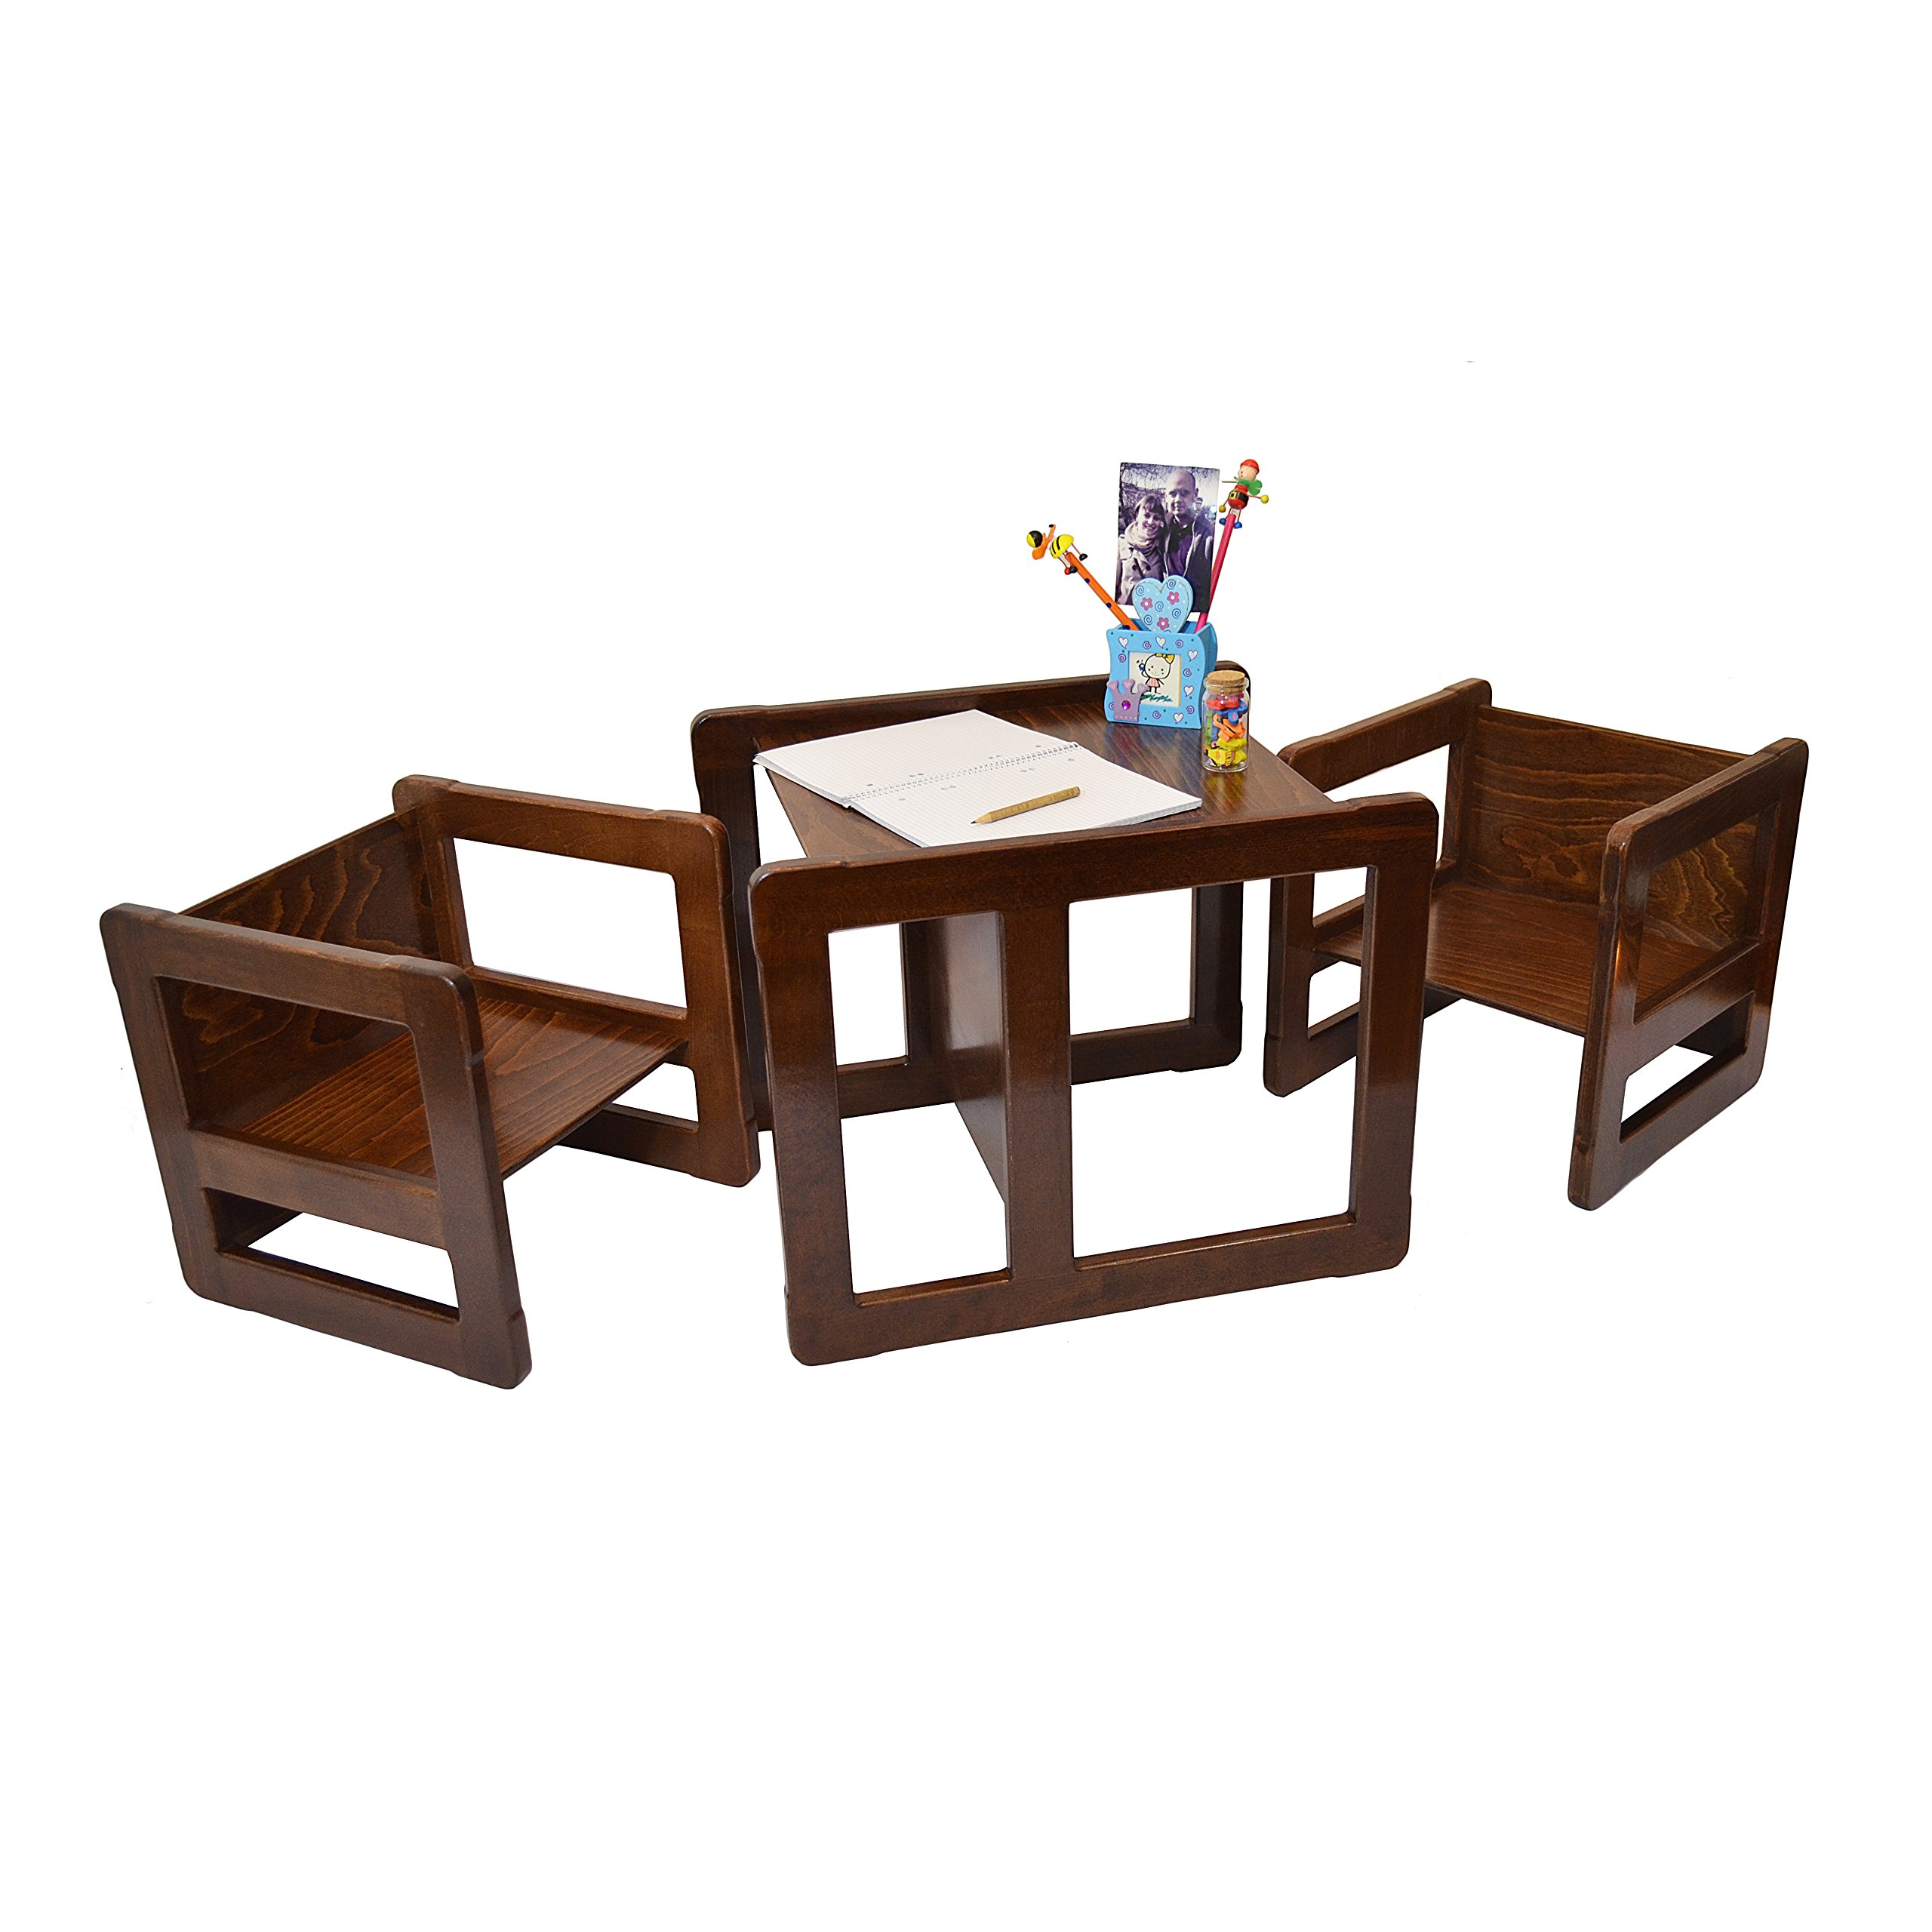 3 in 1 Childrens Multifunctional Furniture Set of 3, Two Small Chairs or Tables and One Large Chair or Table Beech Wood, Dark Stained by Obique Ltd